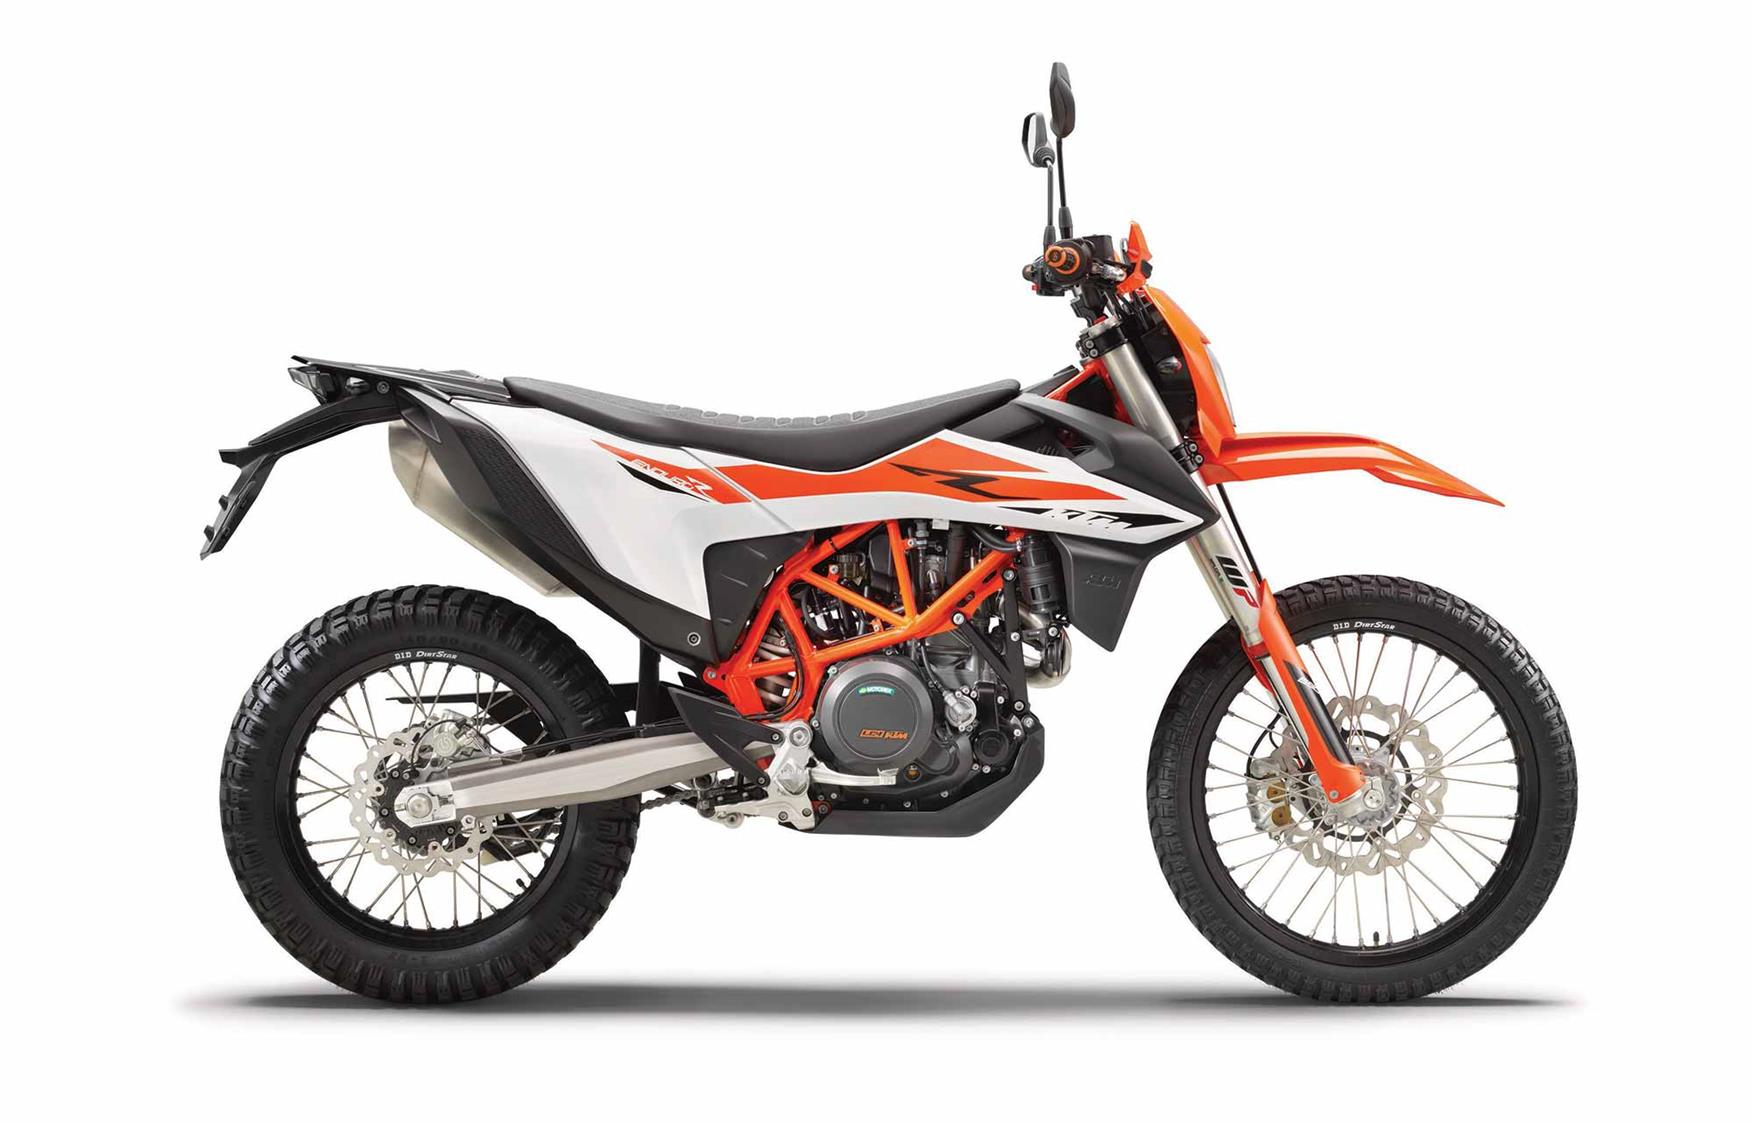 pricing released for 2019 ktm 690 smc r and enduro models. Black Bedroom Furniture Sets. Home Design Ideas